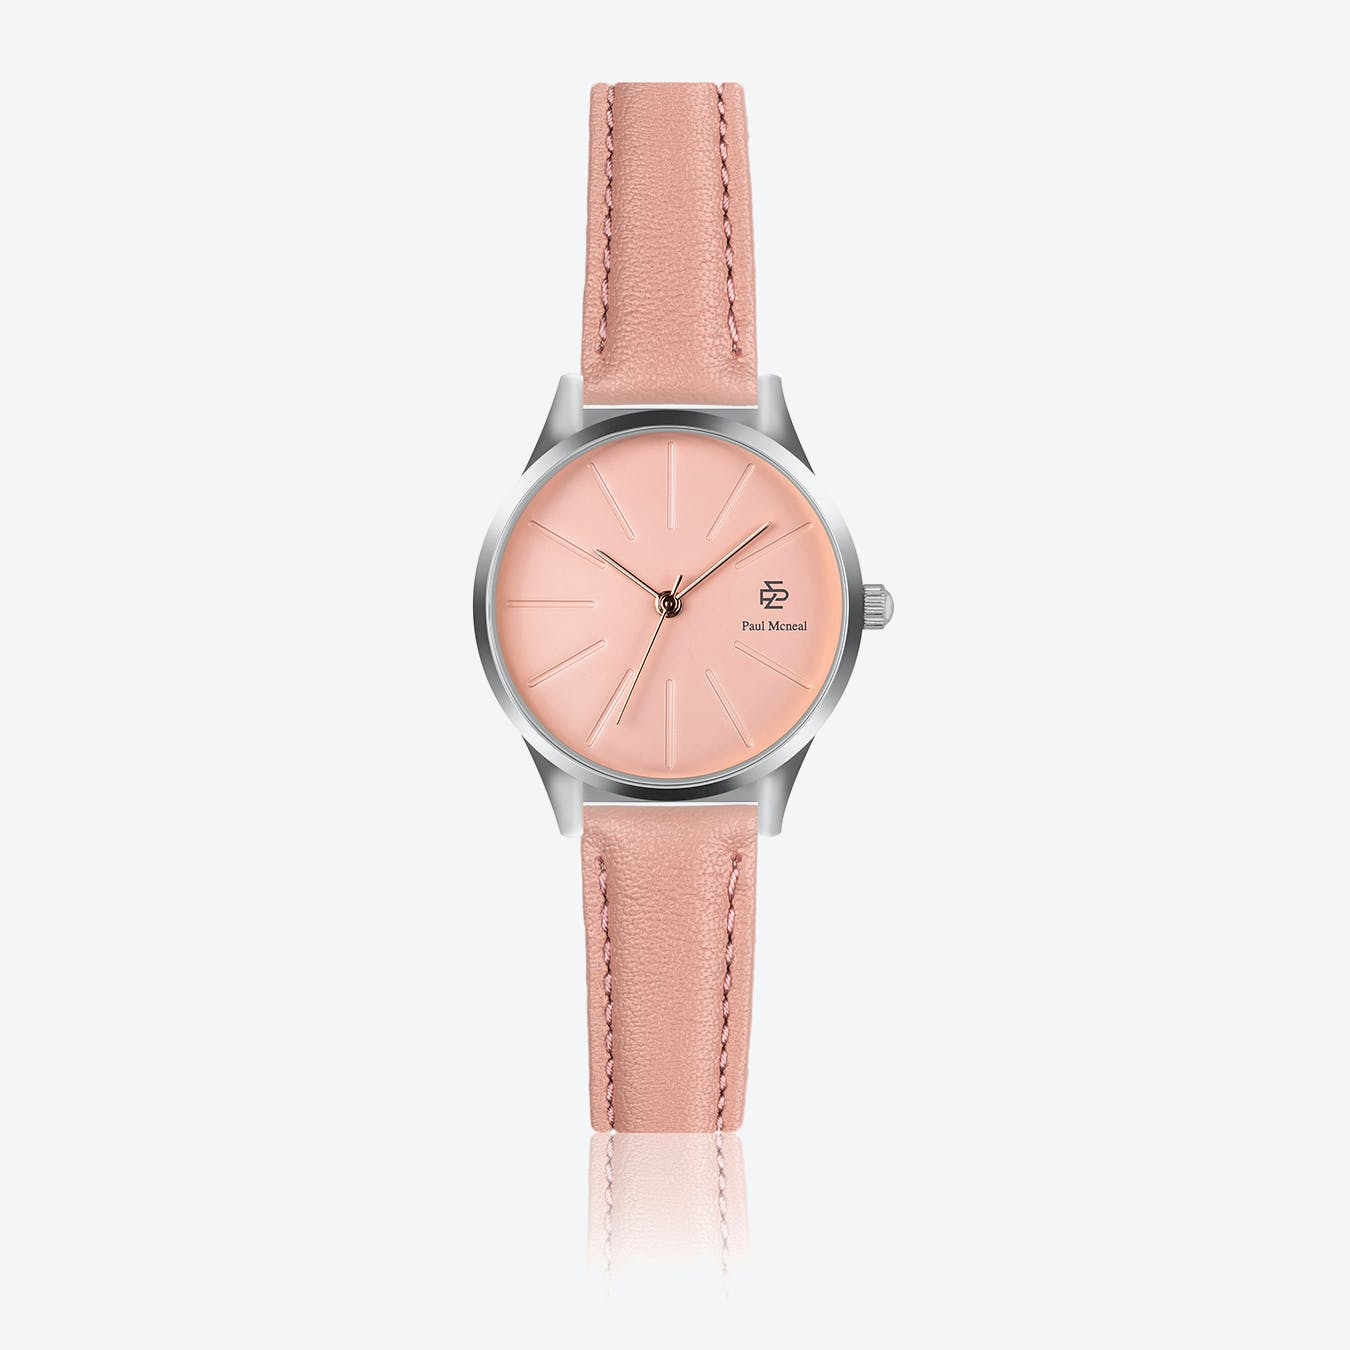 Pink Leather Watch w/ Rose Gold Sunray Face - Ø 32 mm